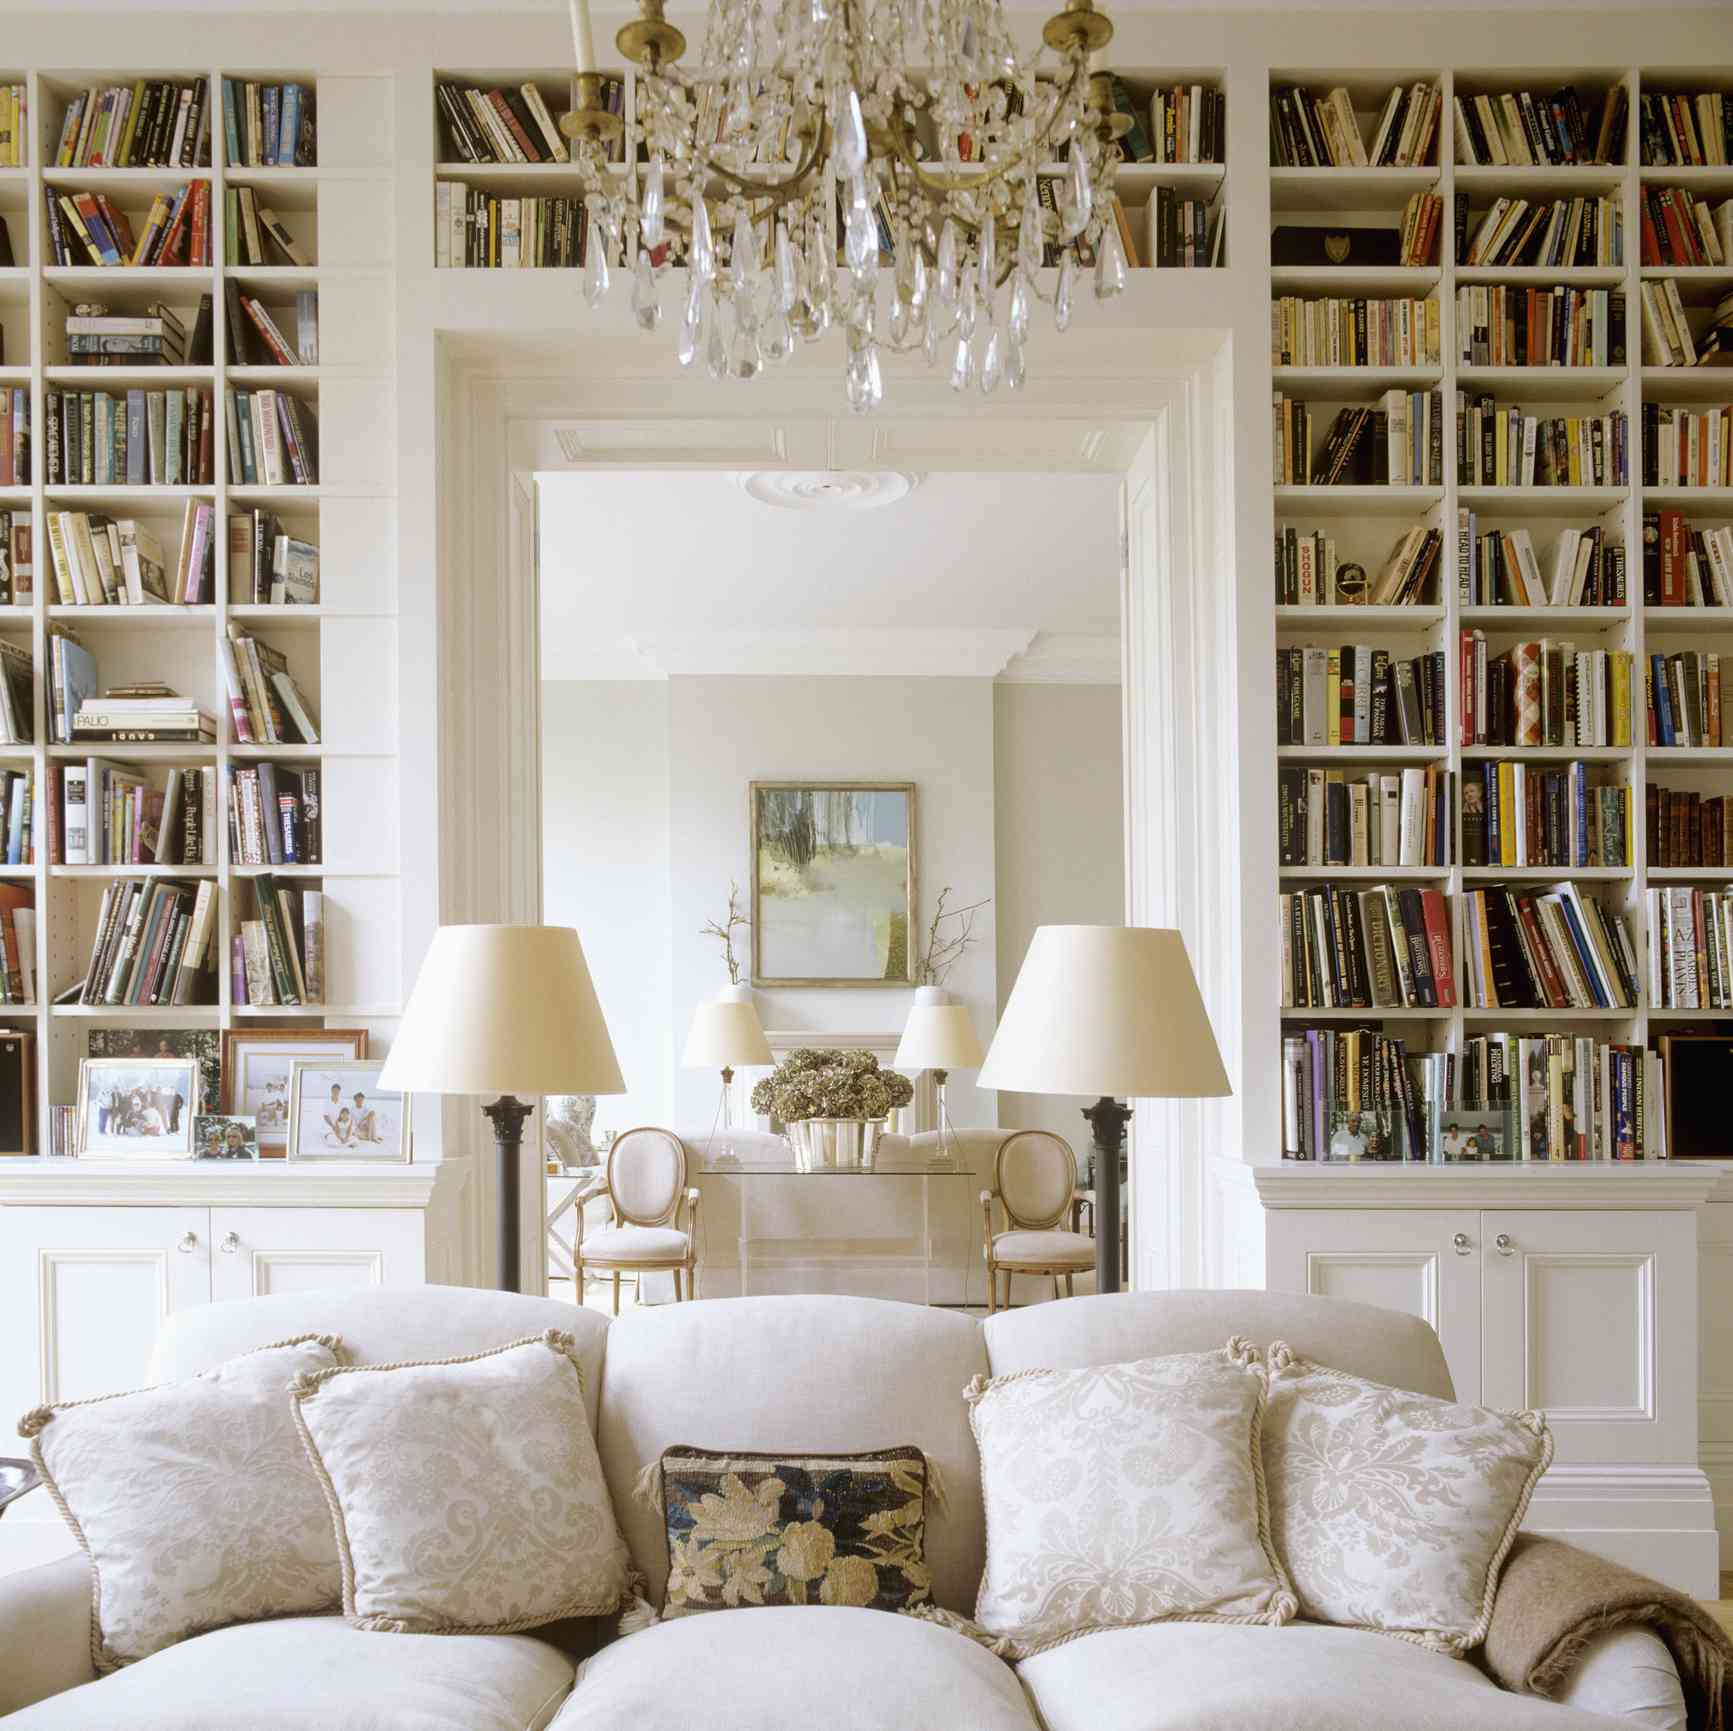 Cozy living room with bookshelves